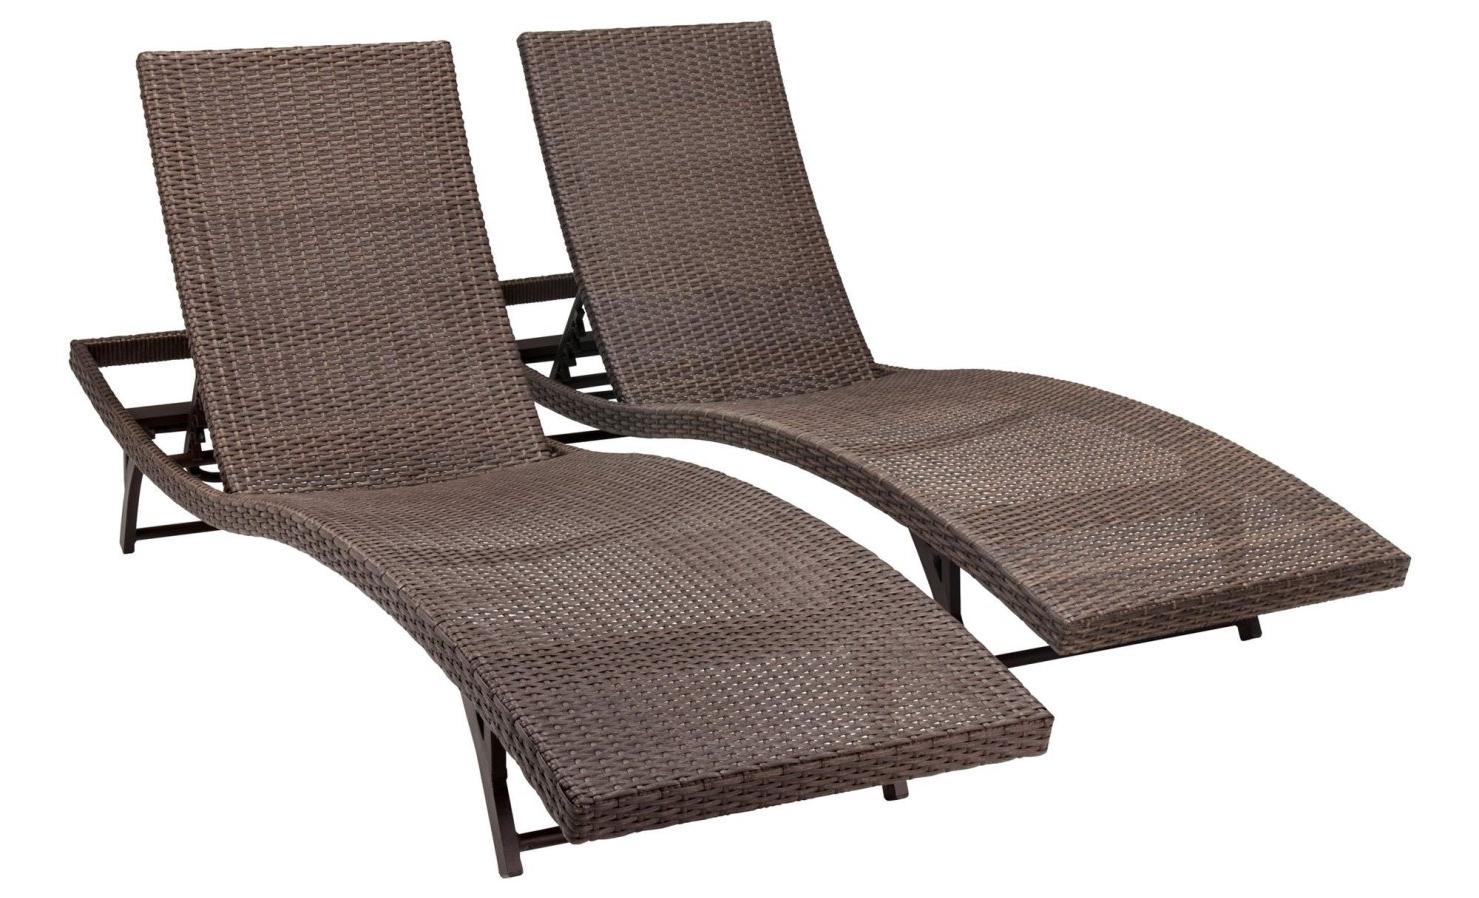 Chaise Lounge Chairs In Toronto Regarding 2018 Chair : Amazing Chaise Lounge Chair Outdoor Posada Patio Chaise (View 4 of 15)